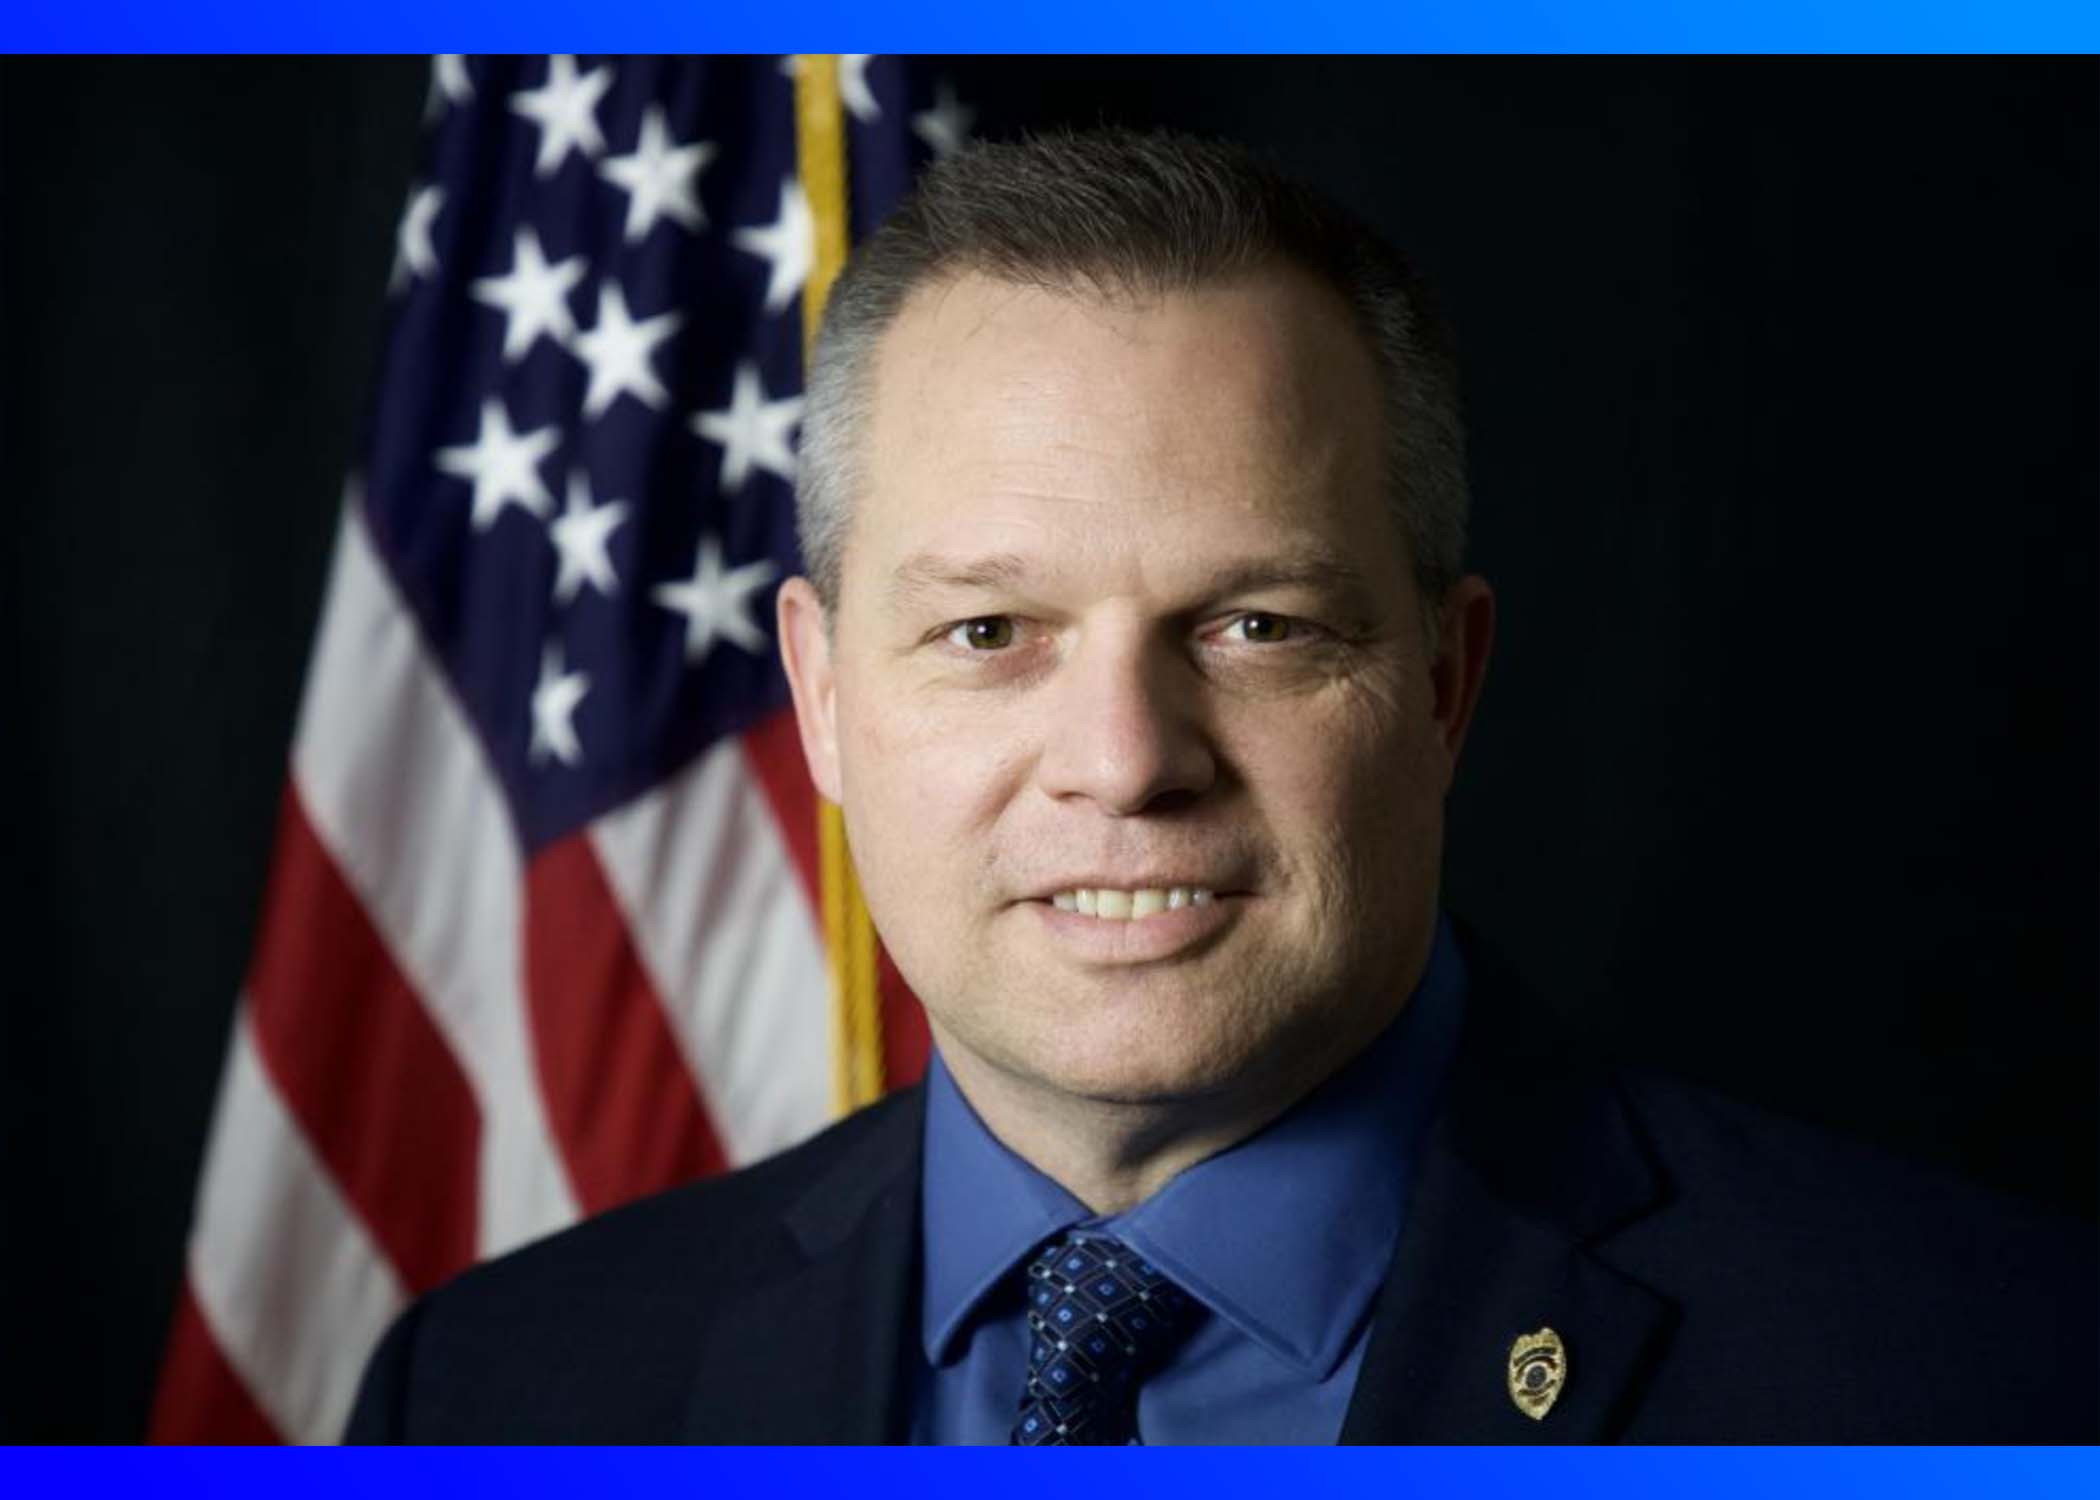 Mountain Brook announces acting Chief of Police